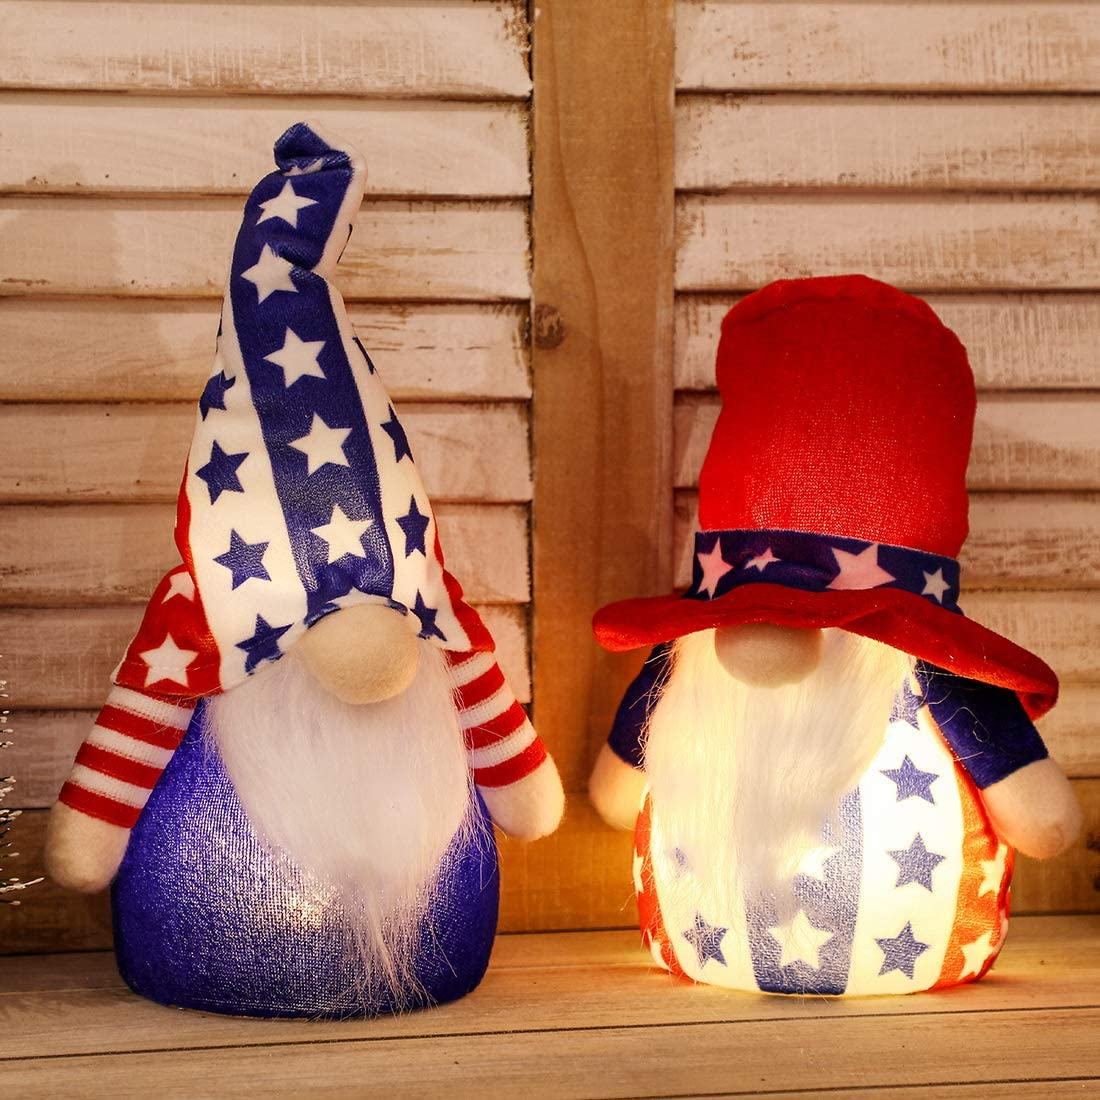 EDLDECCO Patriotic Gnome Light up 9 Inches Set of 2 Stars and Stripes Nisse Figurine Plush Swedish Nordic Tomte Scandinavian Elf 4th of July Memorial Day Veterans Day Decor (Red & White)